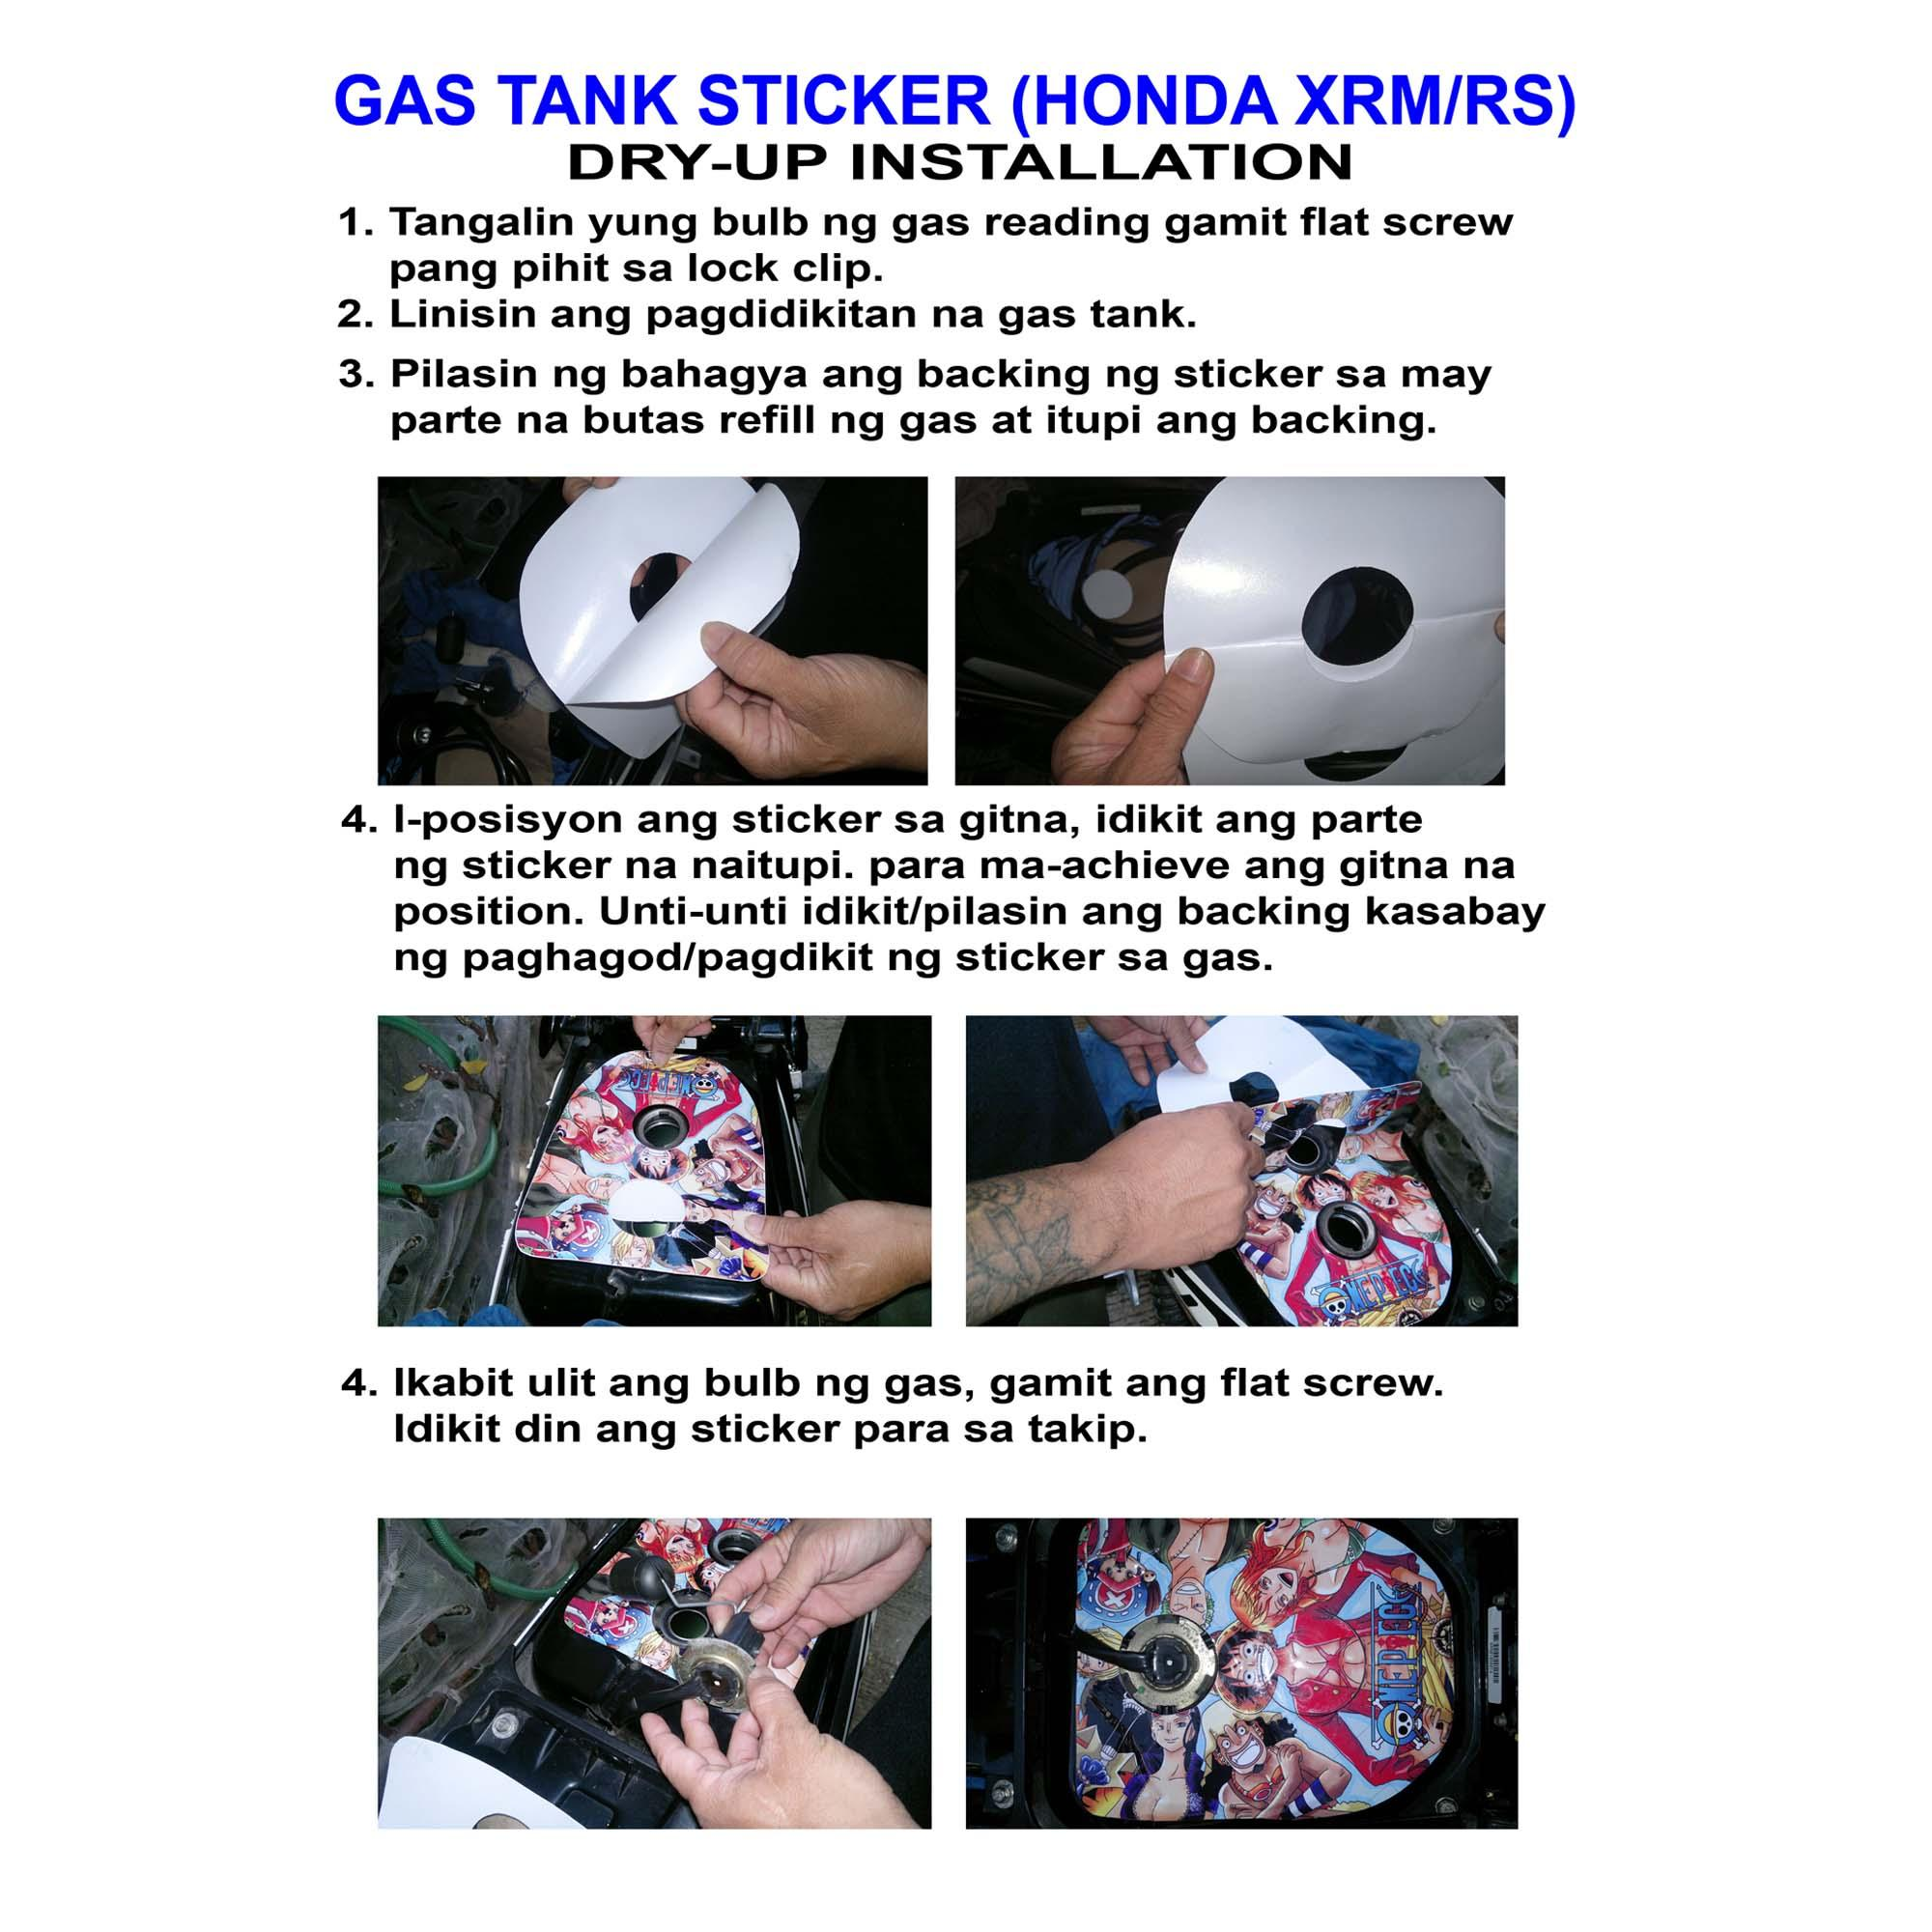 We used high quality high adhesive gas resistant vinyl stickers